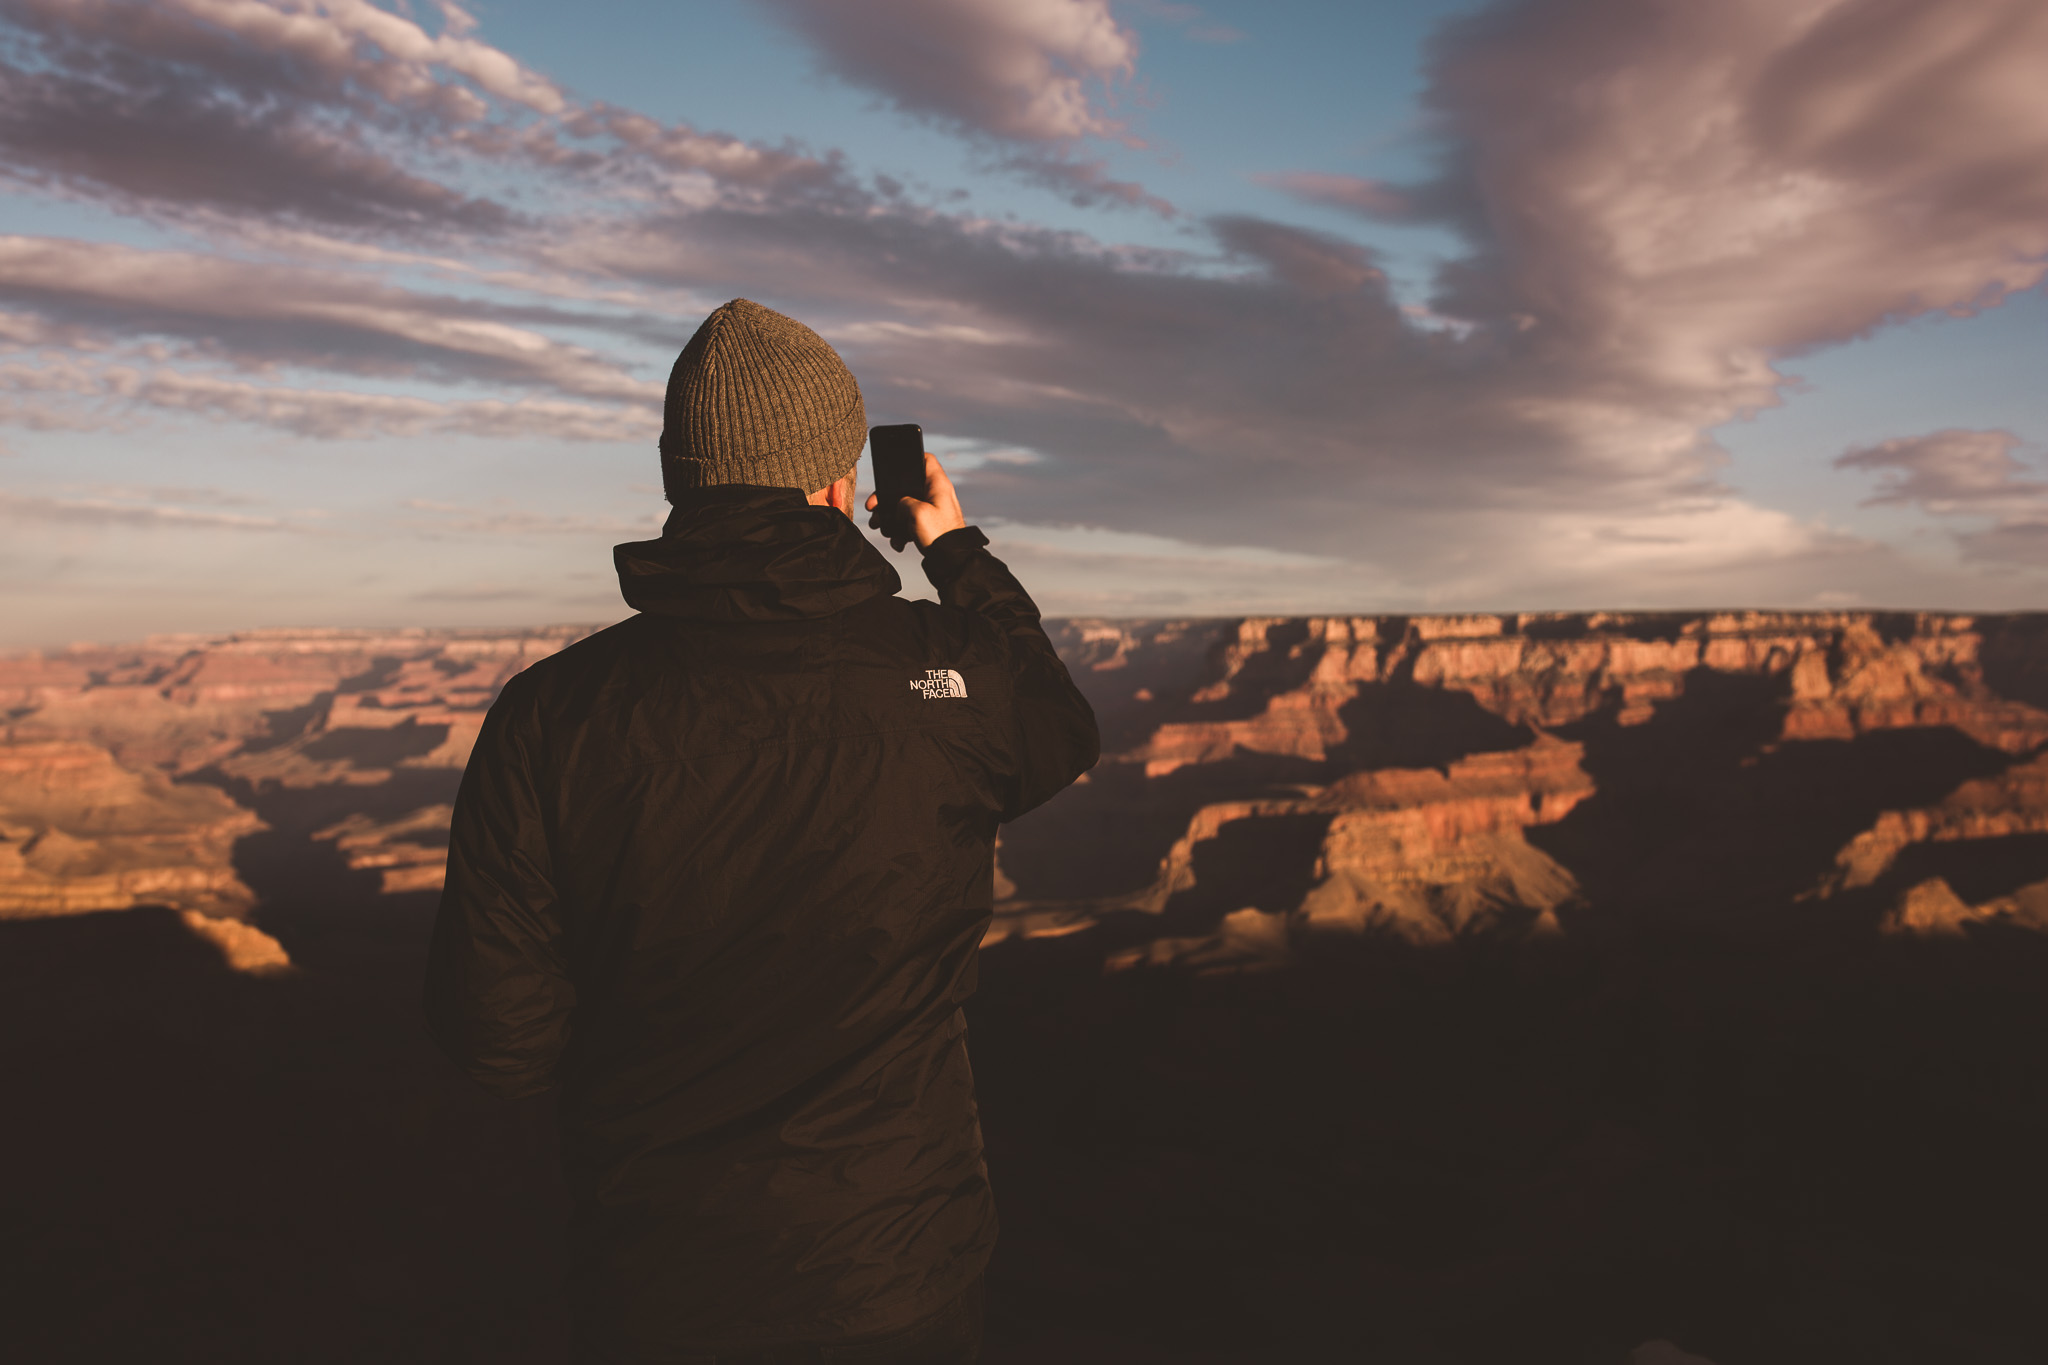 taking-instagram-photos-at-the-grand-canyon